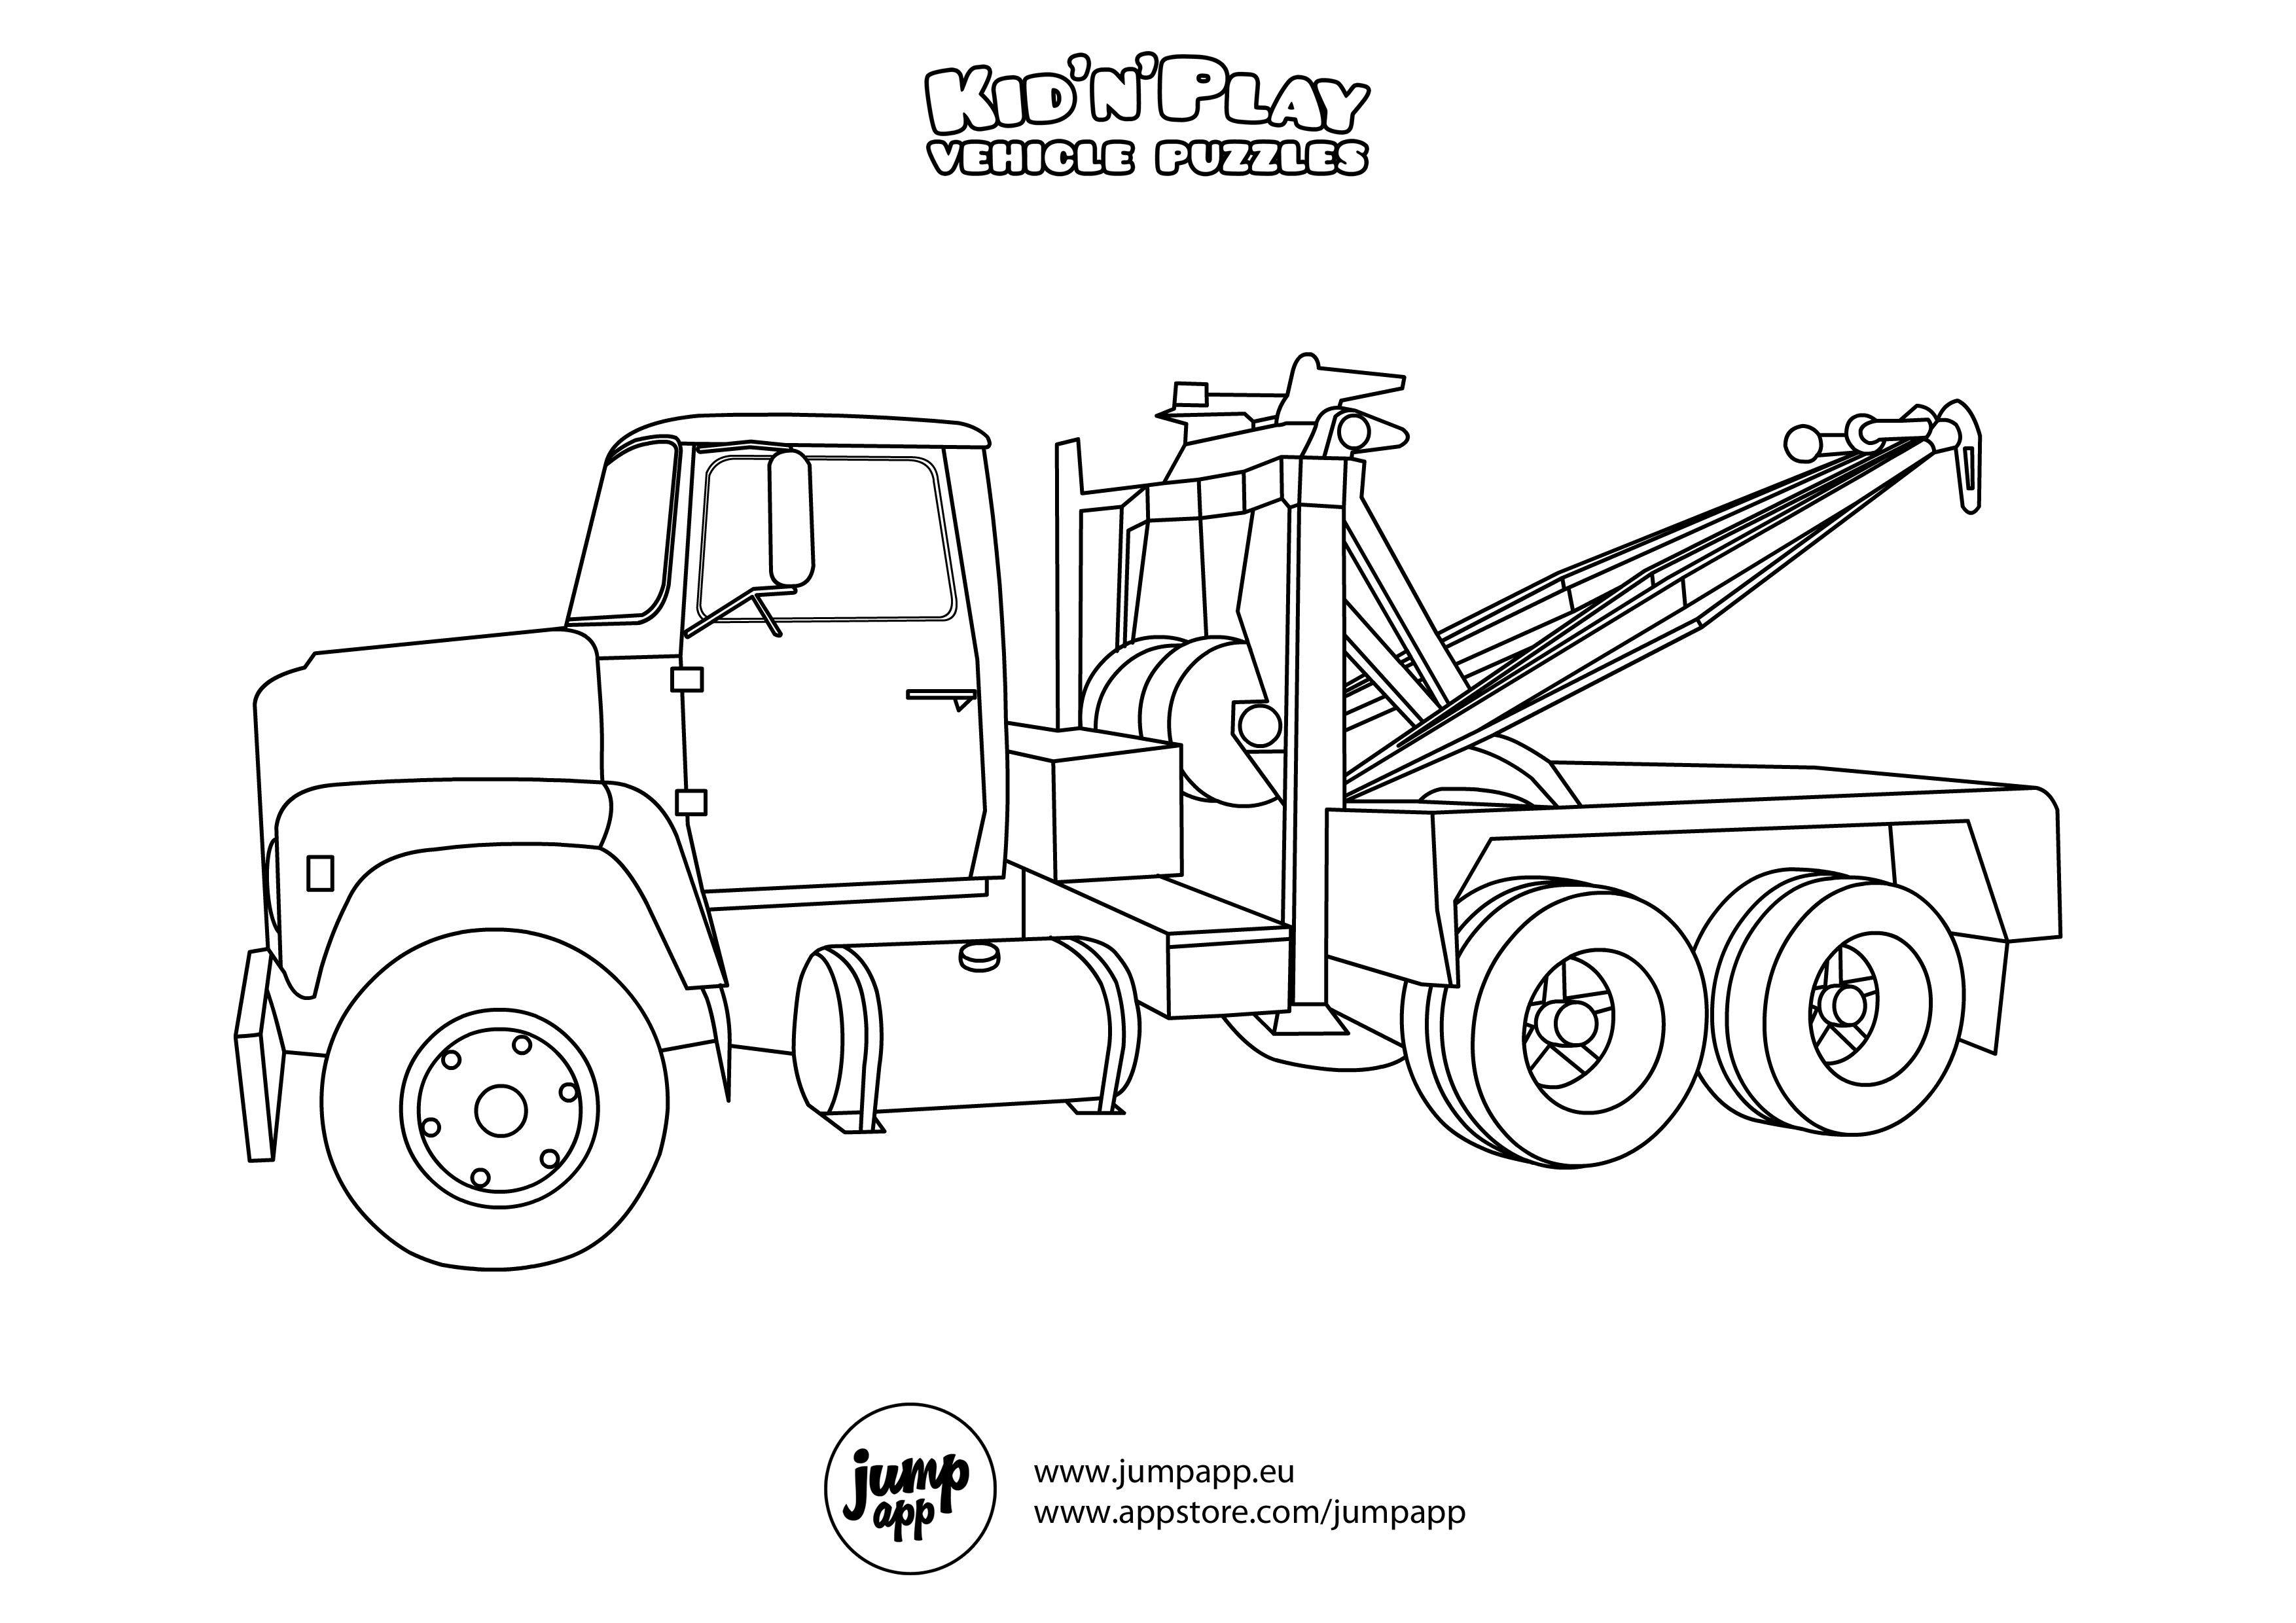 Black and white wrecker clipart image library library Free Rollback Truck Cliparts, Download Free Clip Art, Free Clip Art ... image library library